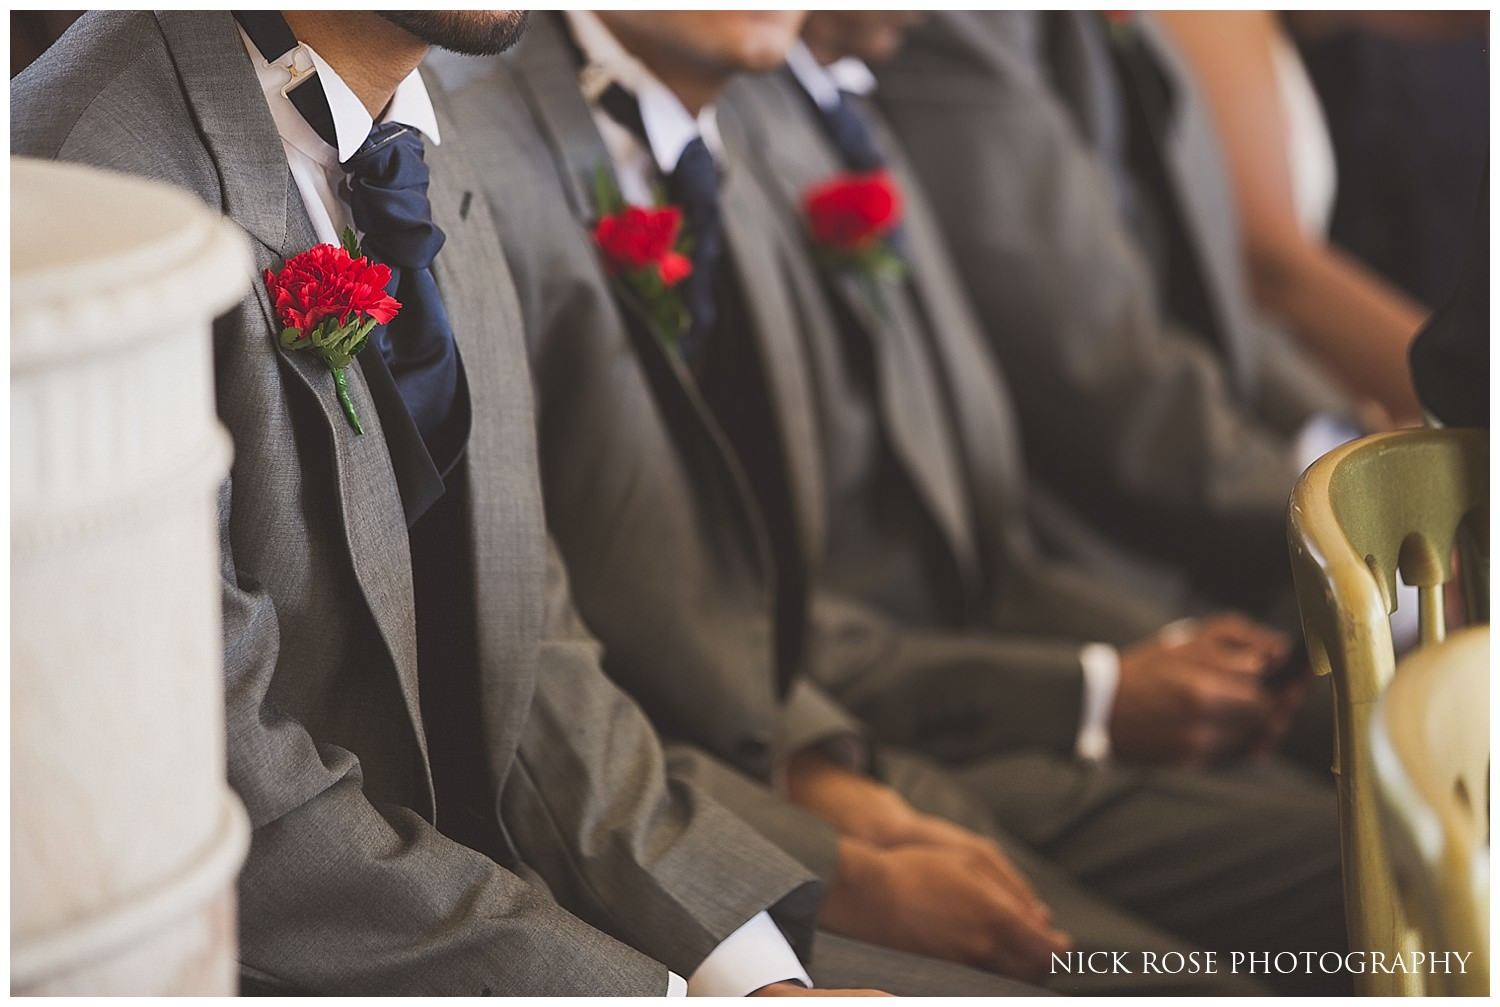 Wedding ushers in Hever Castle with red flowers